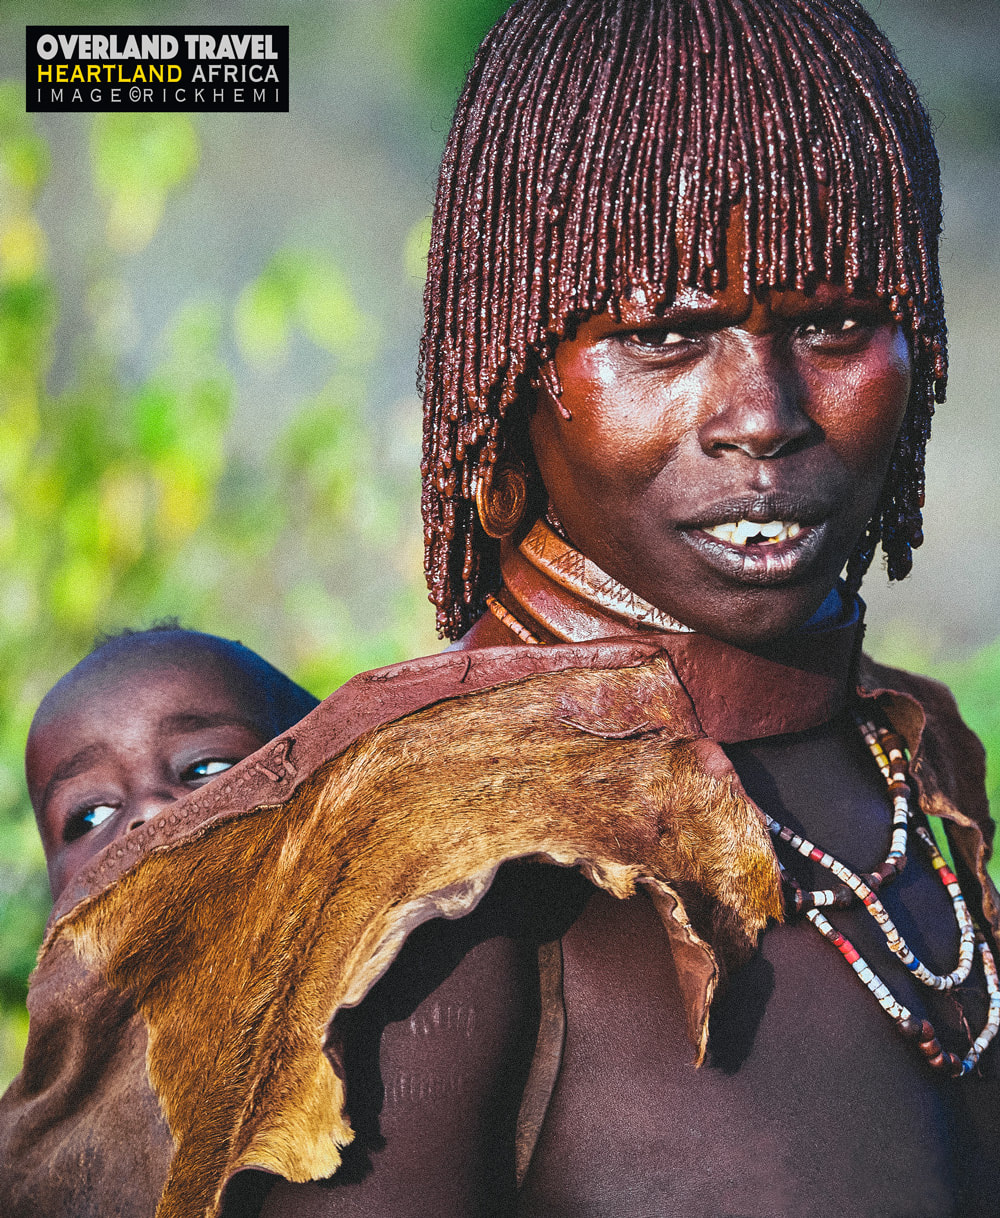 solo travel, Africa overland, tribal lands, image by Rick Hemi